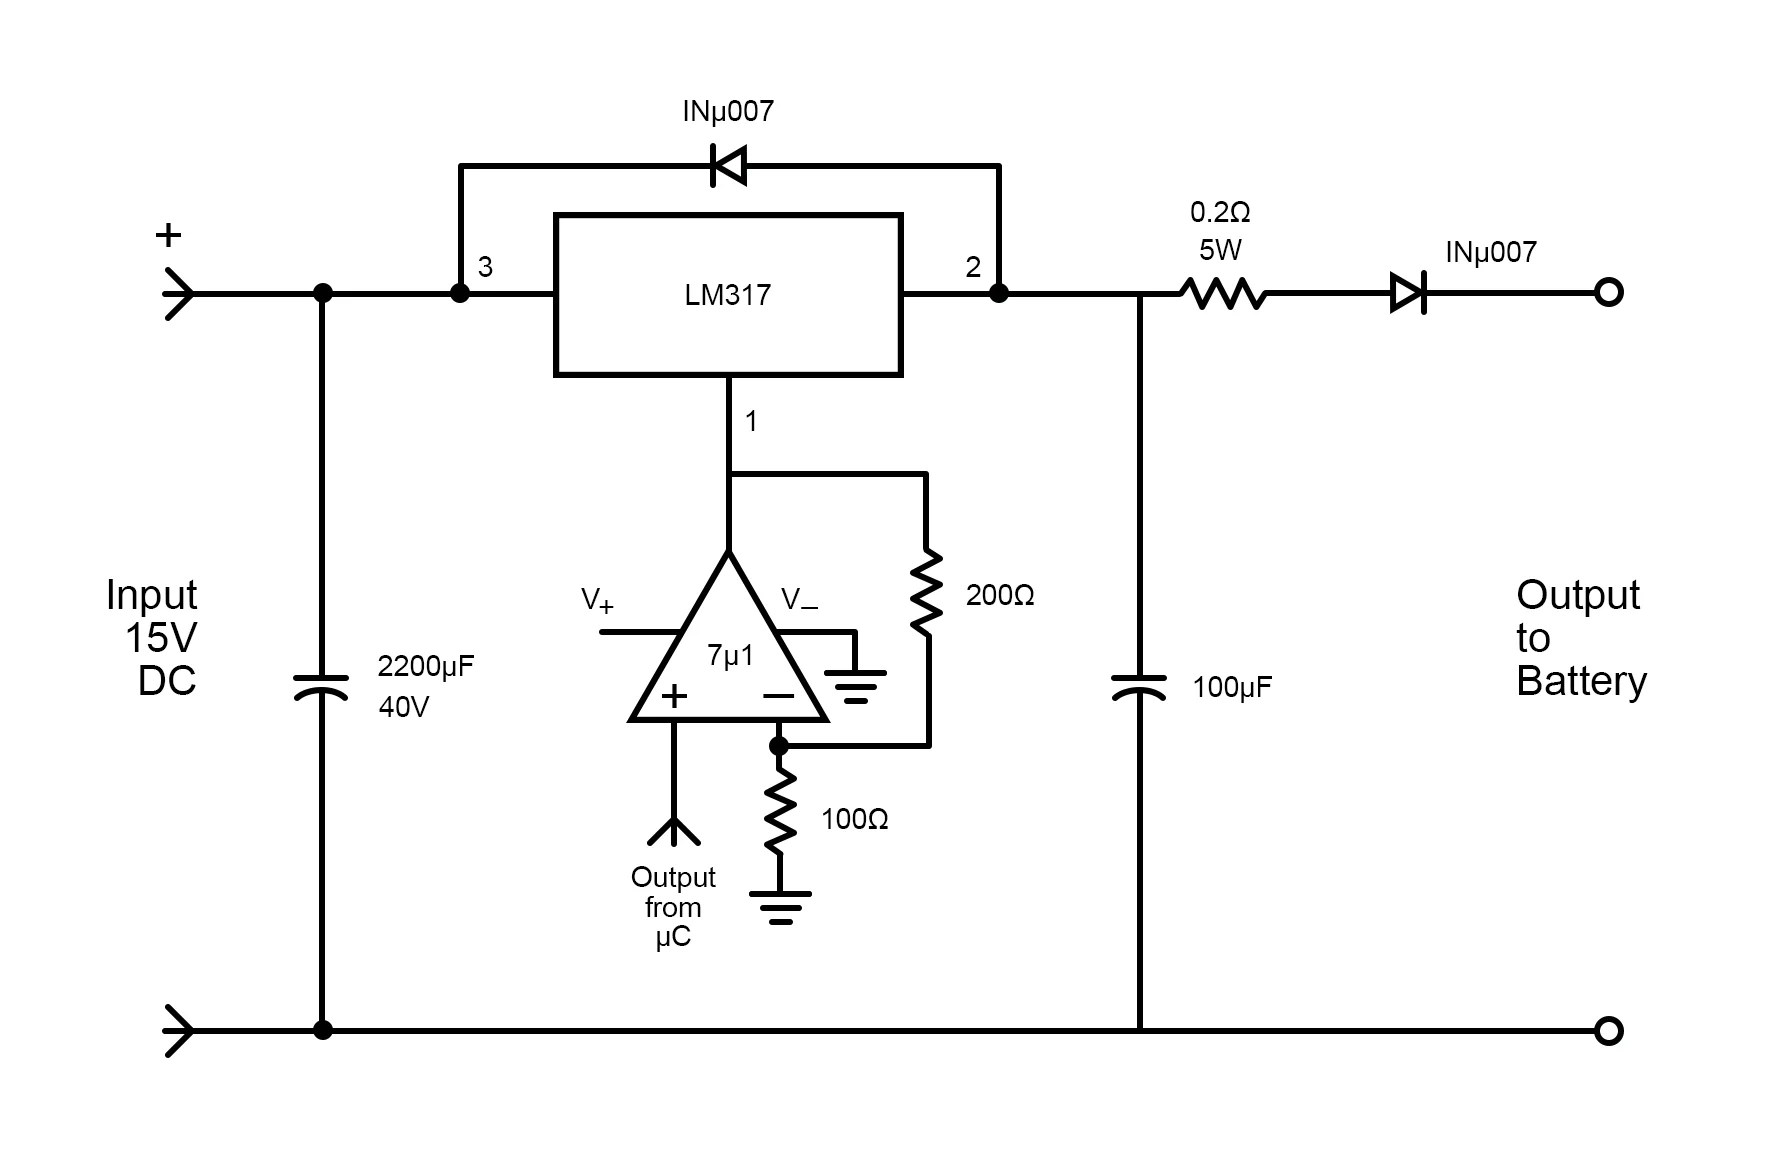 How to Design a Three-stage Battery Charging Circuit